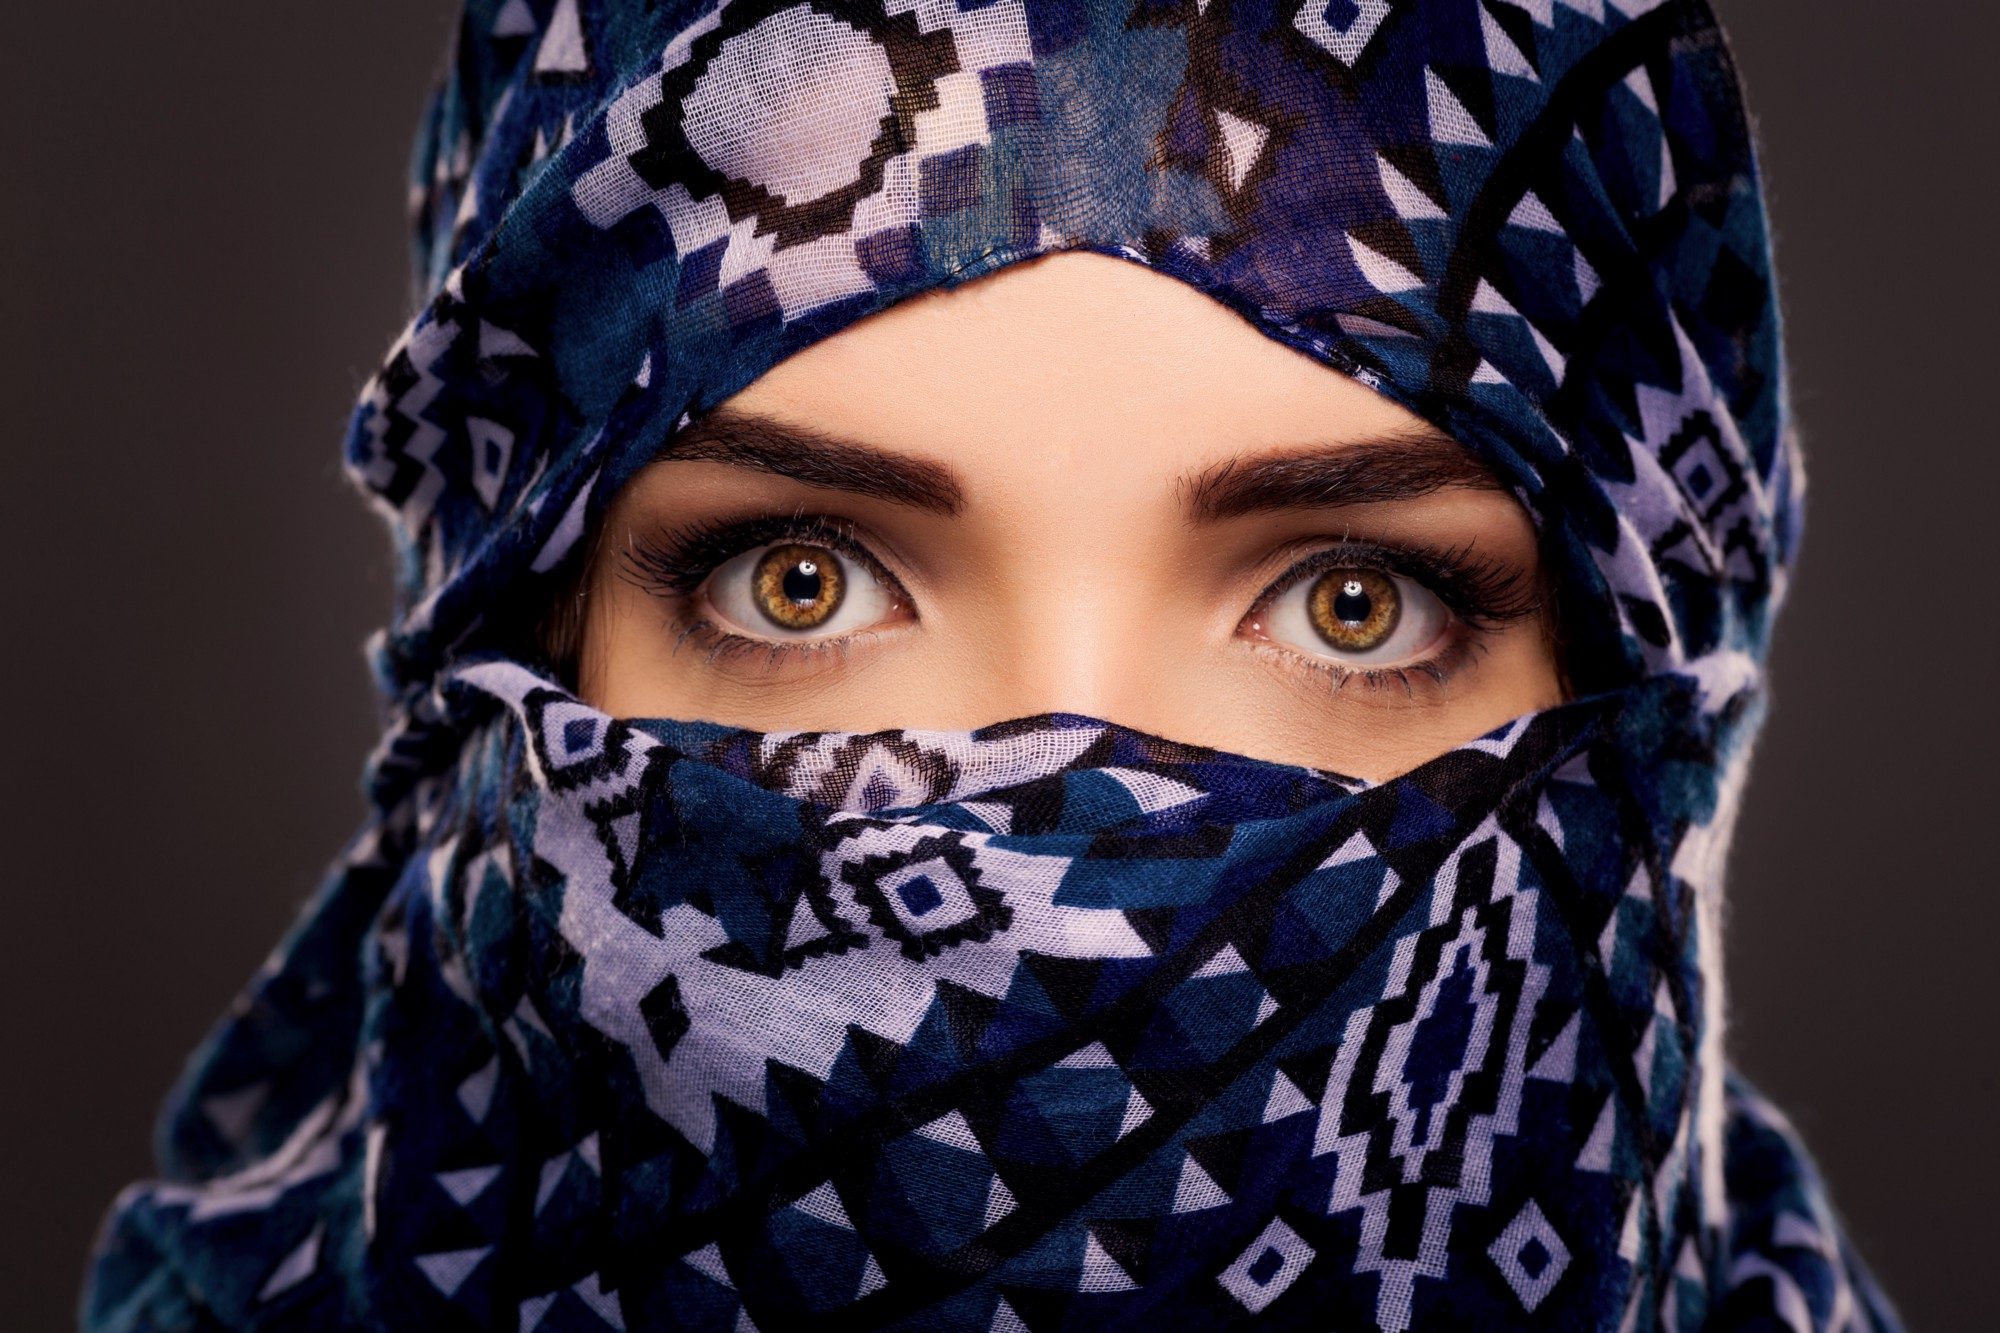 A woman with a head covering that only leaves her brown eyes exposed.